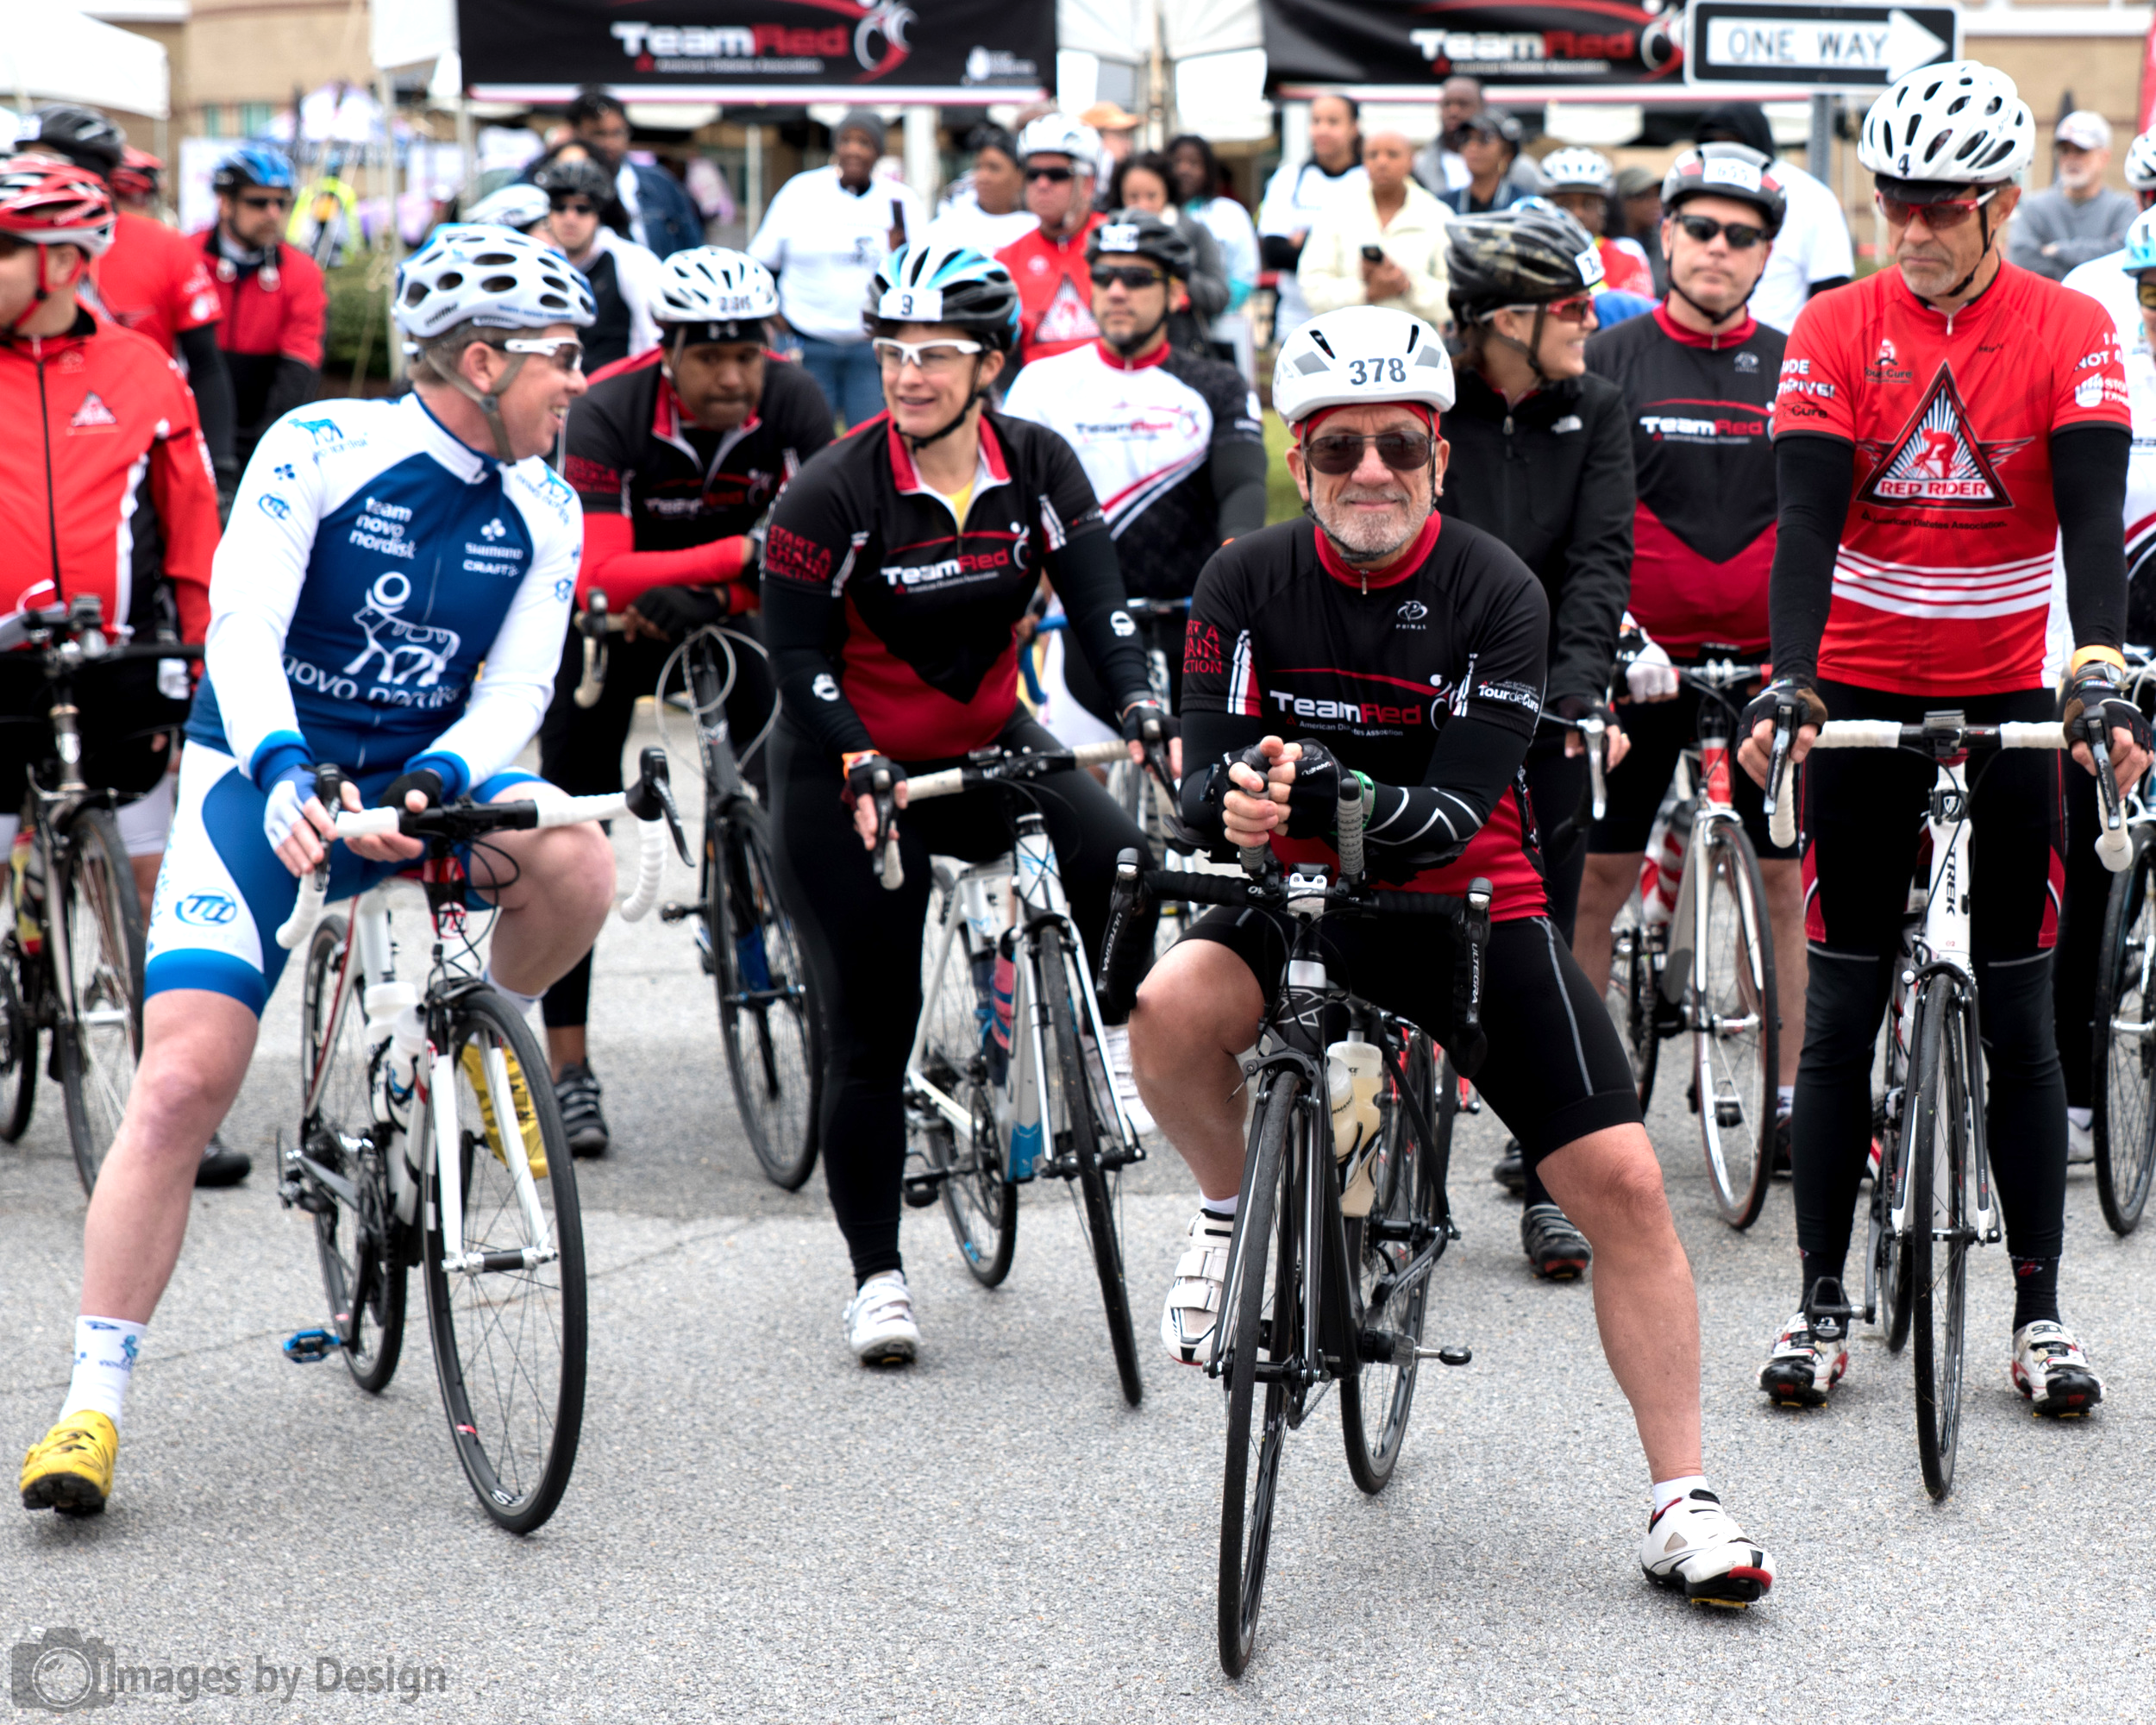 Riders ready at the start for the 100 mile route - Tour du Cure Hampton Roads 2016